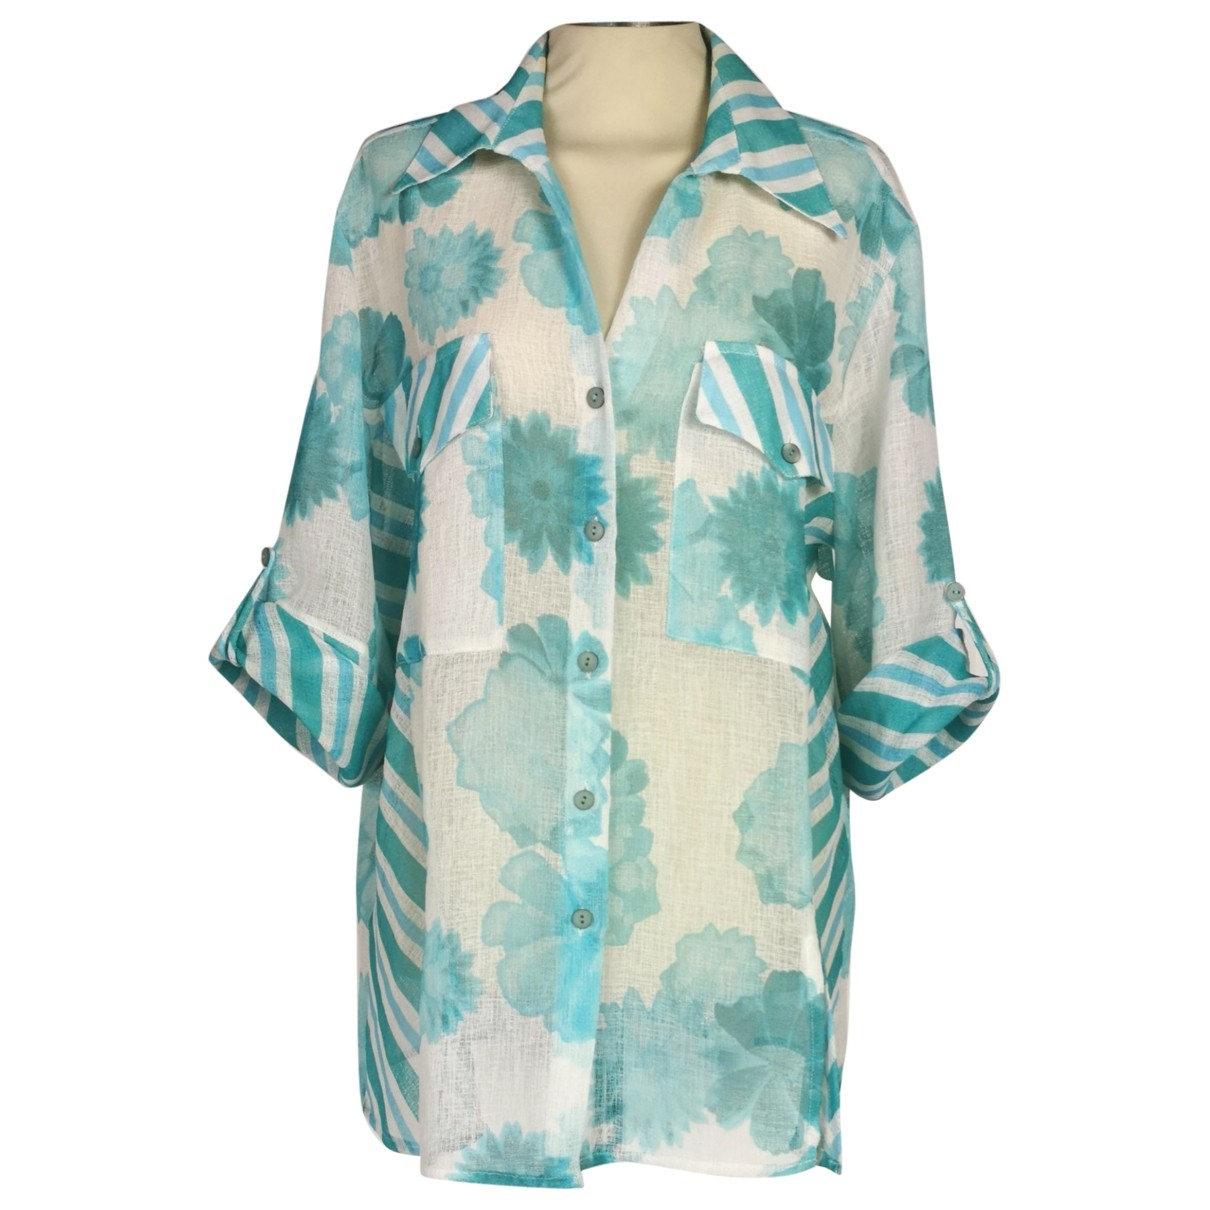 Non Signé / Unsigned \N Turquoise  top for Women 50-52 IT